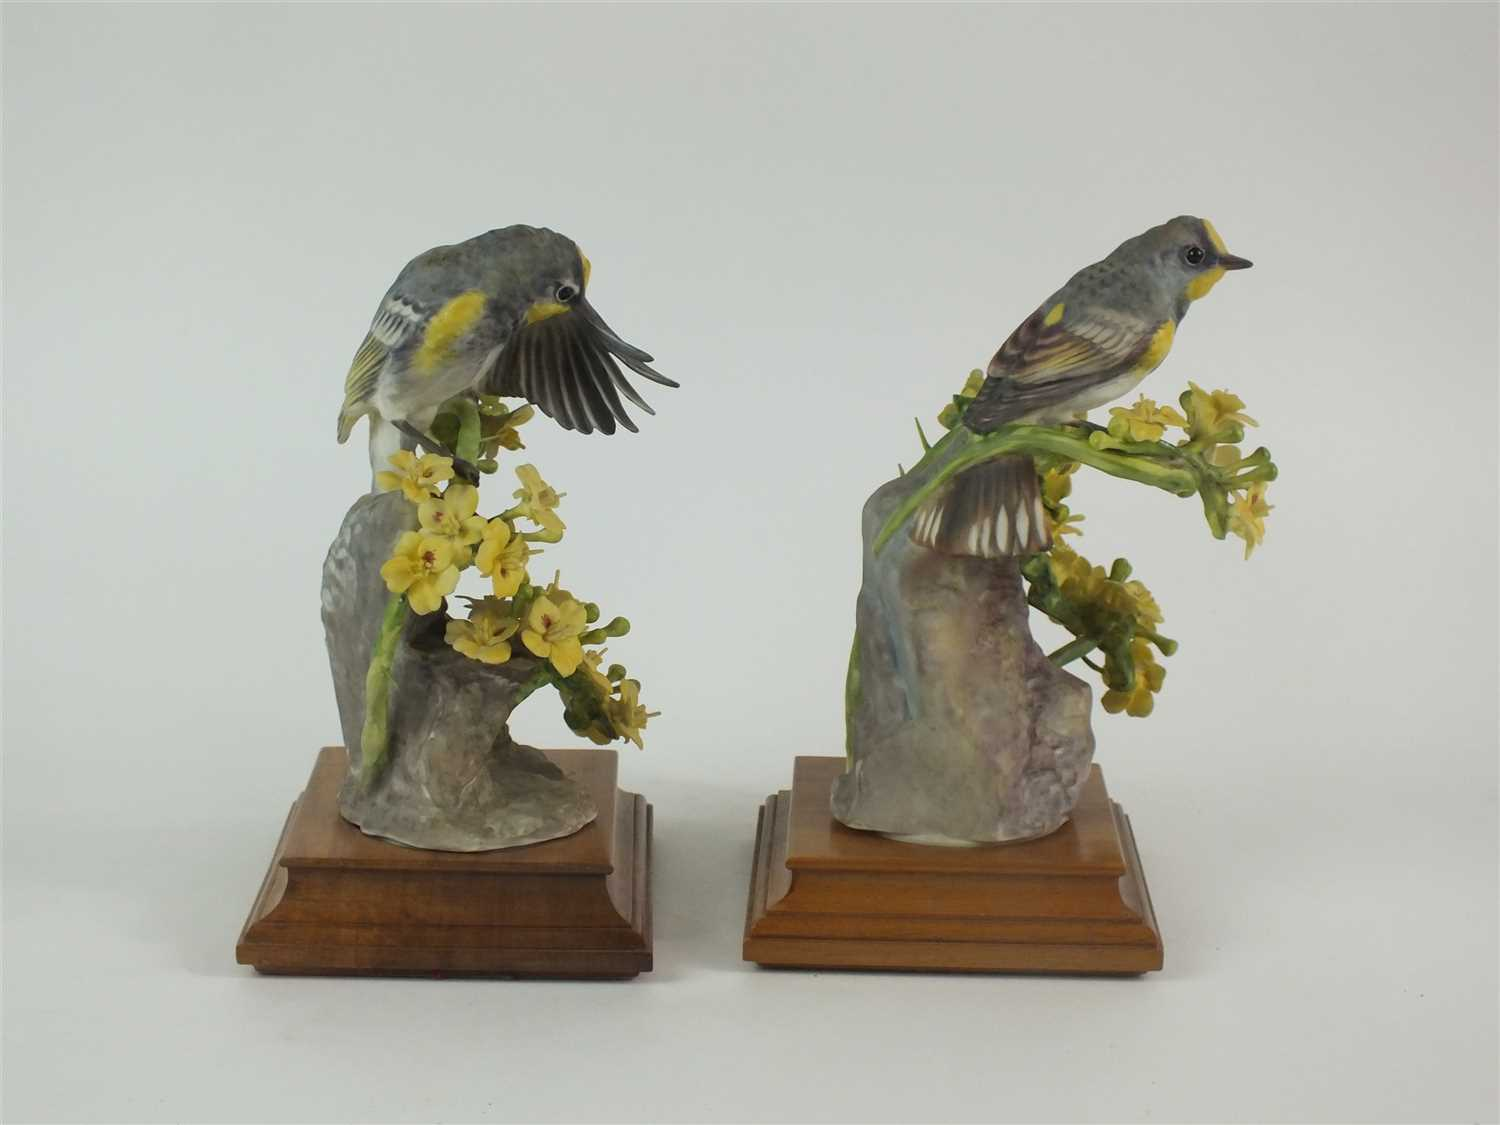 Lot 76 - A pair of Royal Worcester figures of Audubon Warblers on Palo Verdi